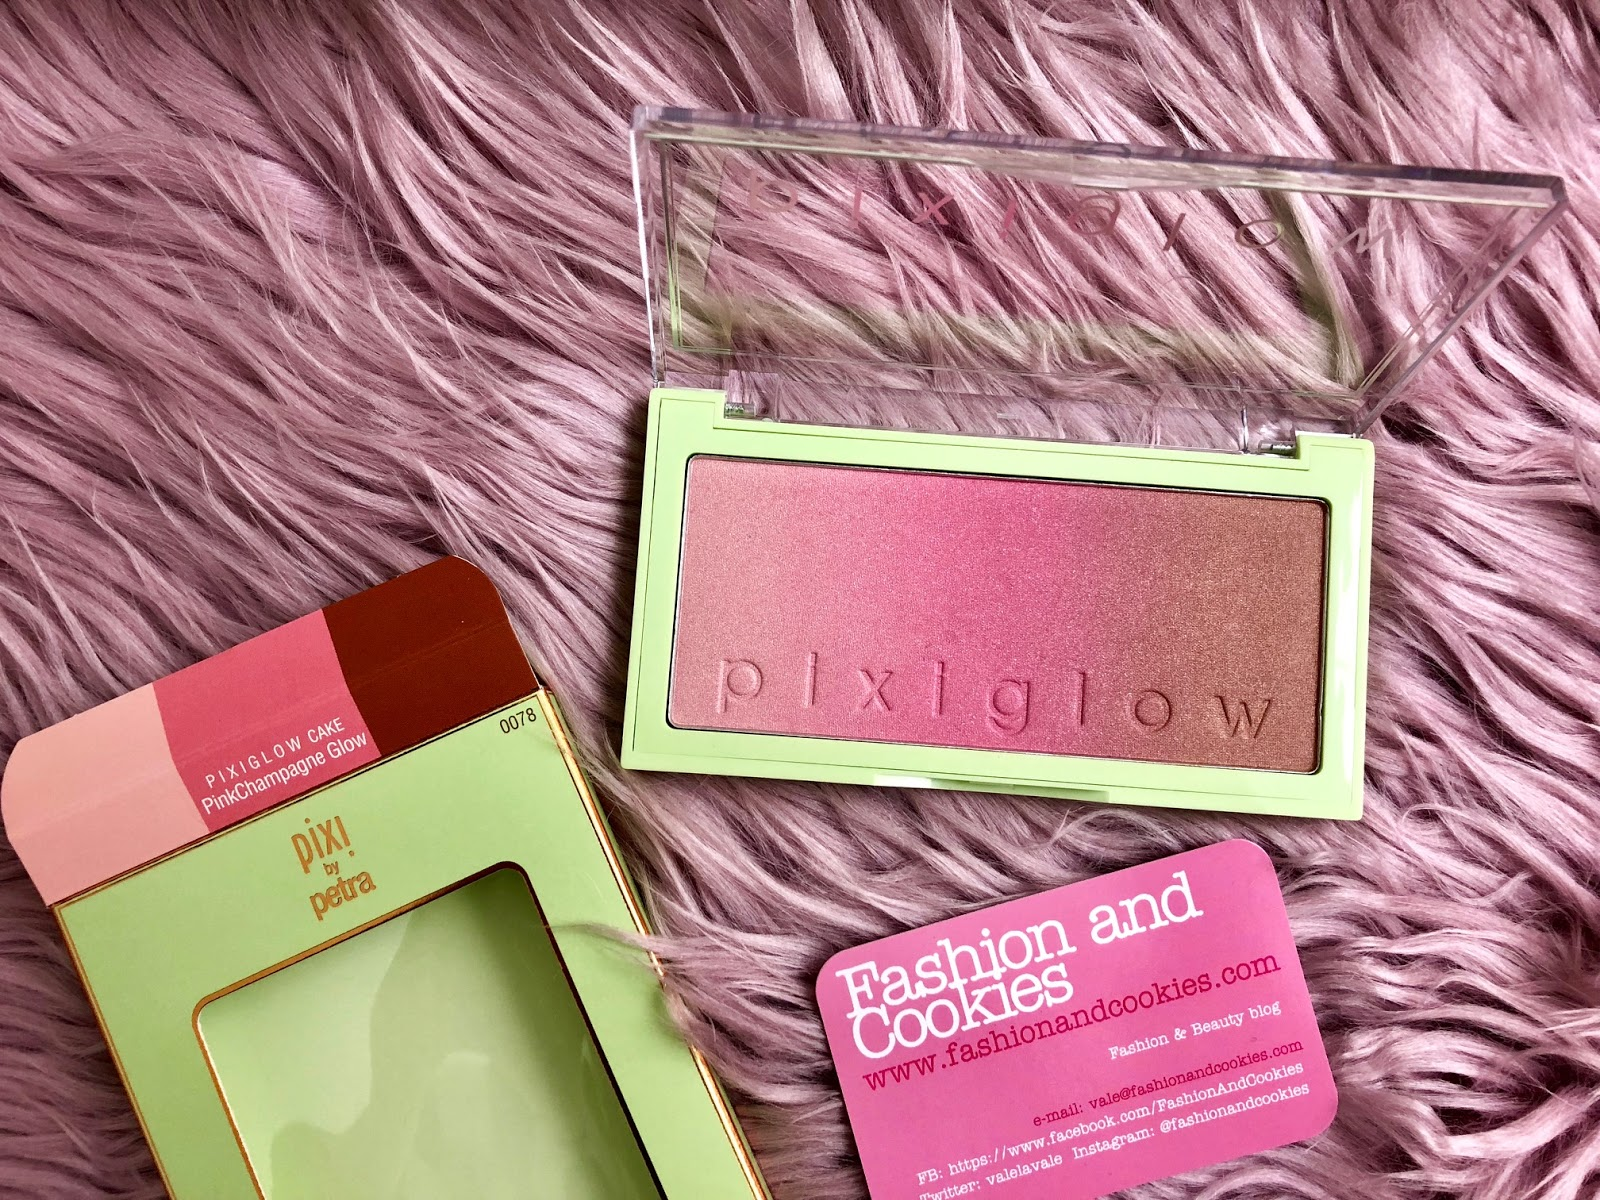 PixiGlow Cake palettes: new from Pixi Beauty PinkChampagne glow on Fashion and Cookies beauty blog